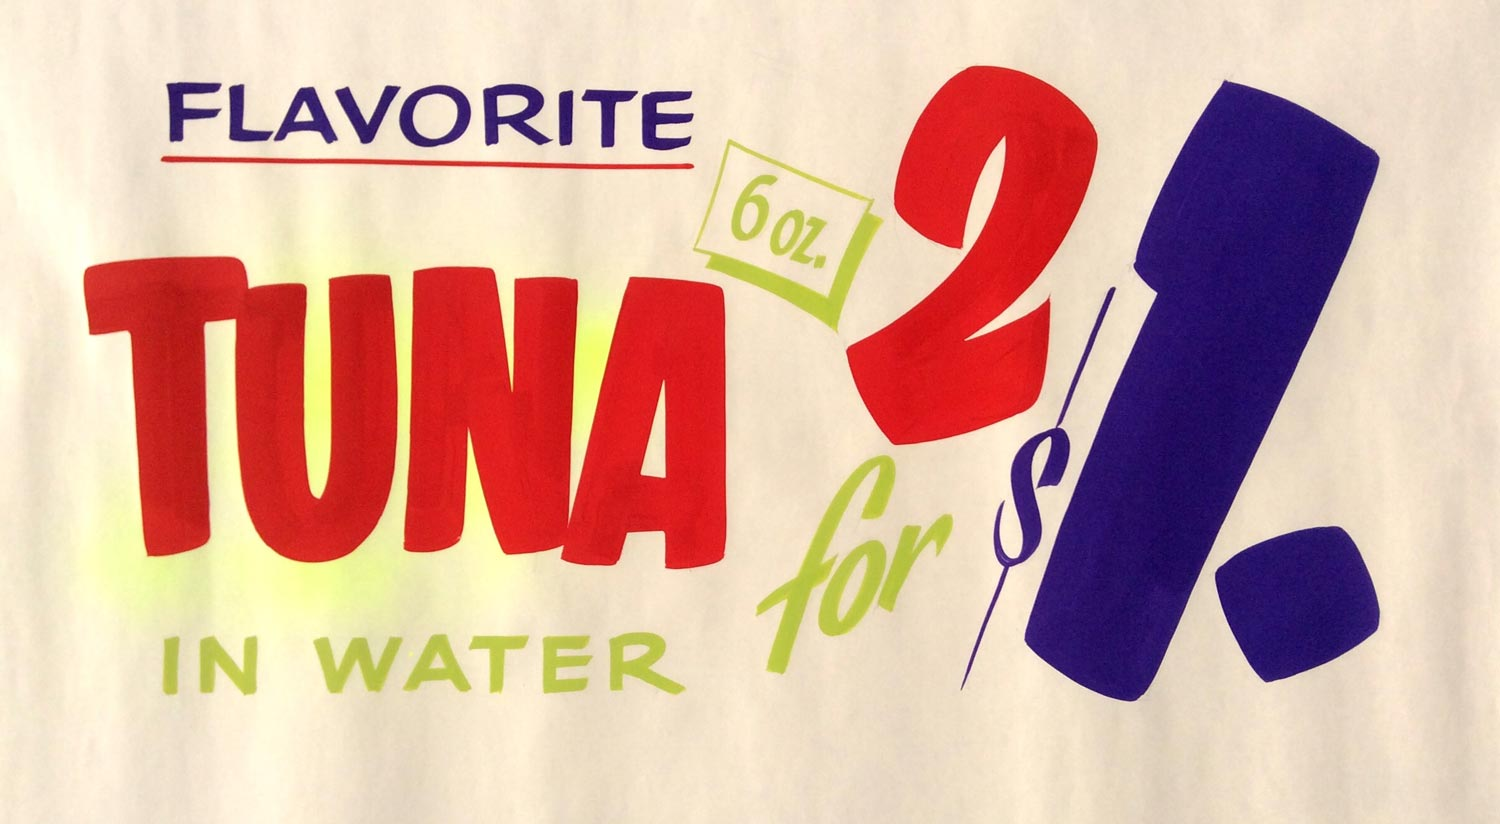 Hand-painted ad for tuna